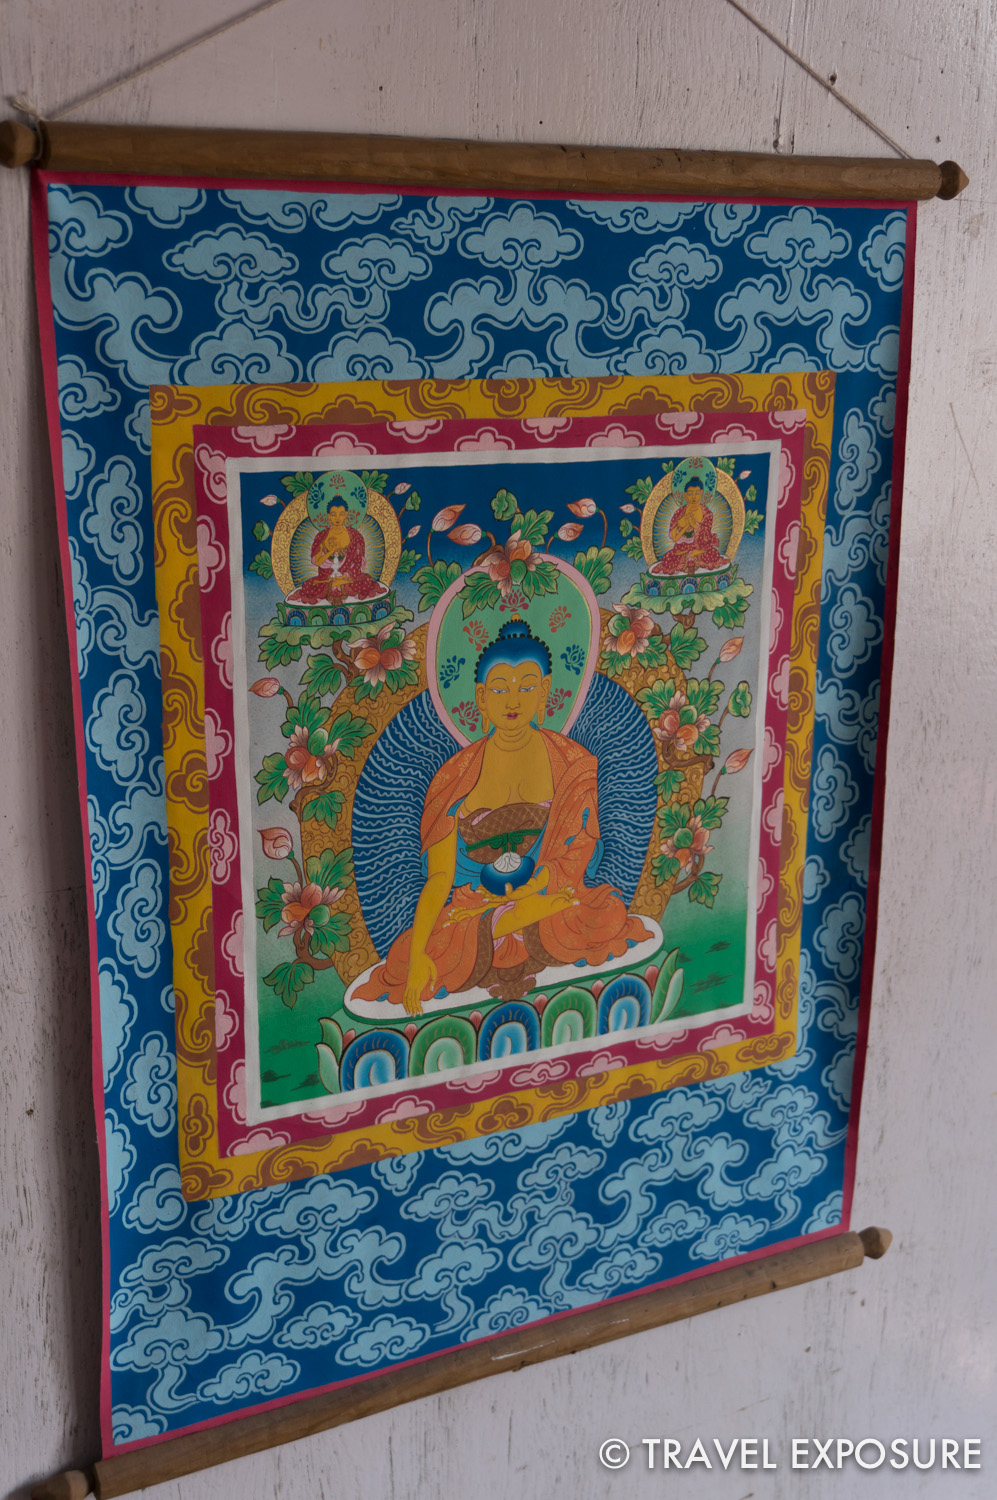 A thangka painting in Gangtok, Sikkim. A Thangka is a painting typically portraying a  Buddhistdeity, scene, ormandala.